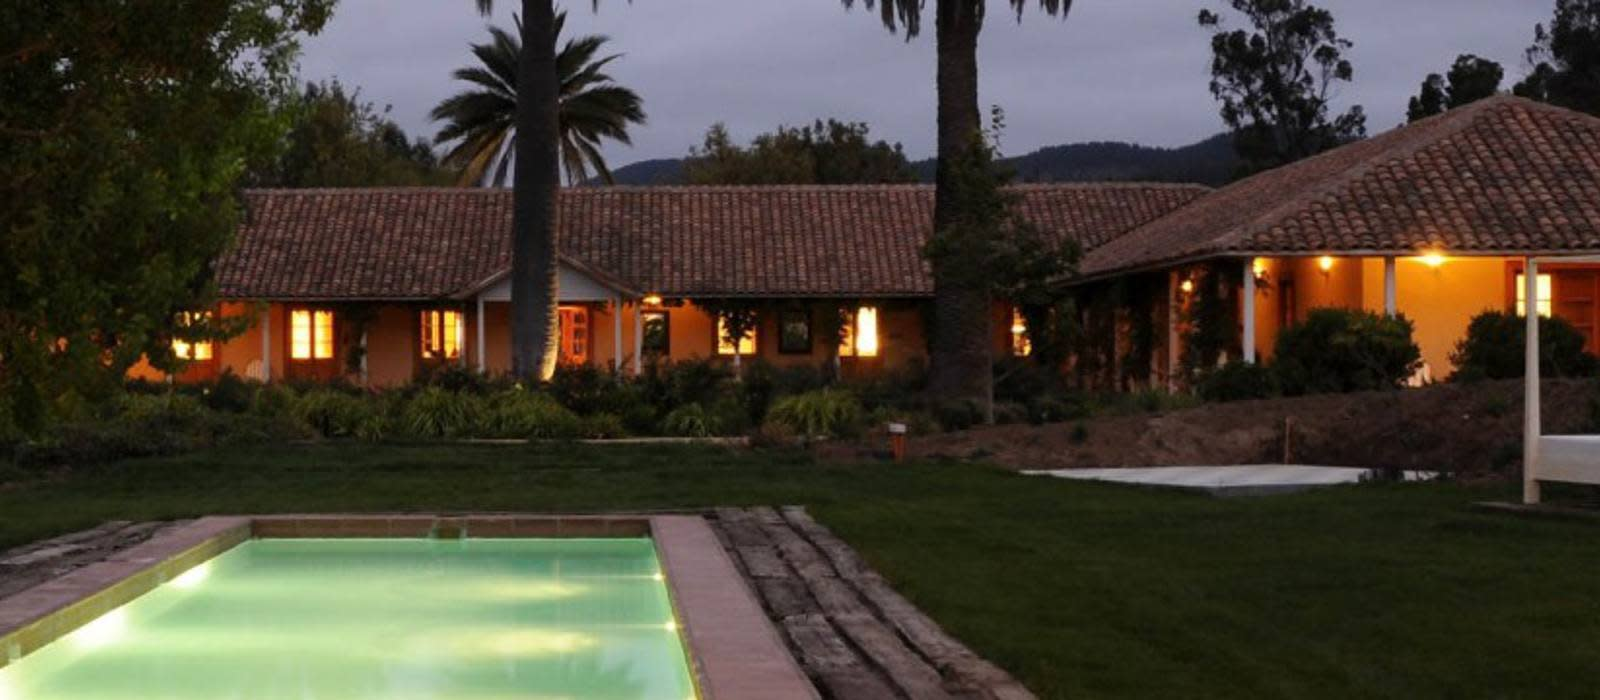 Hotel La Casona at Matetic Chile